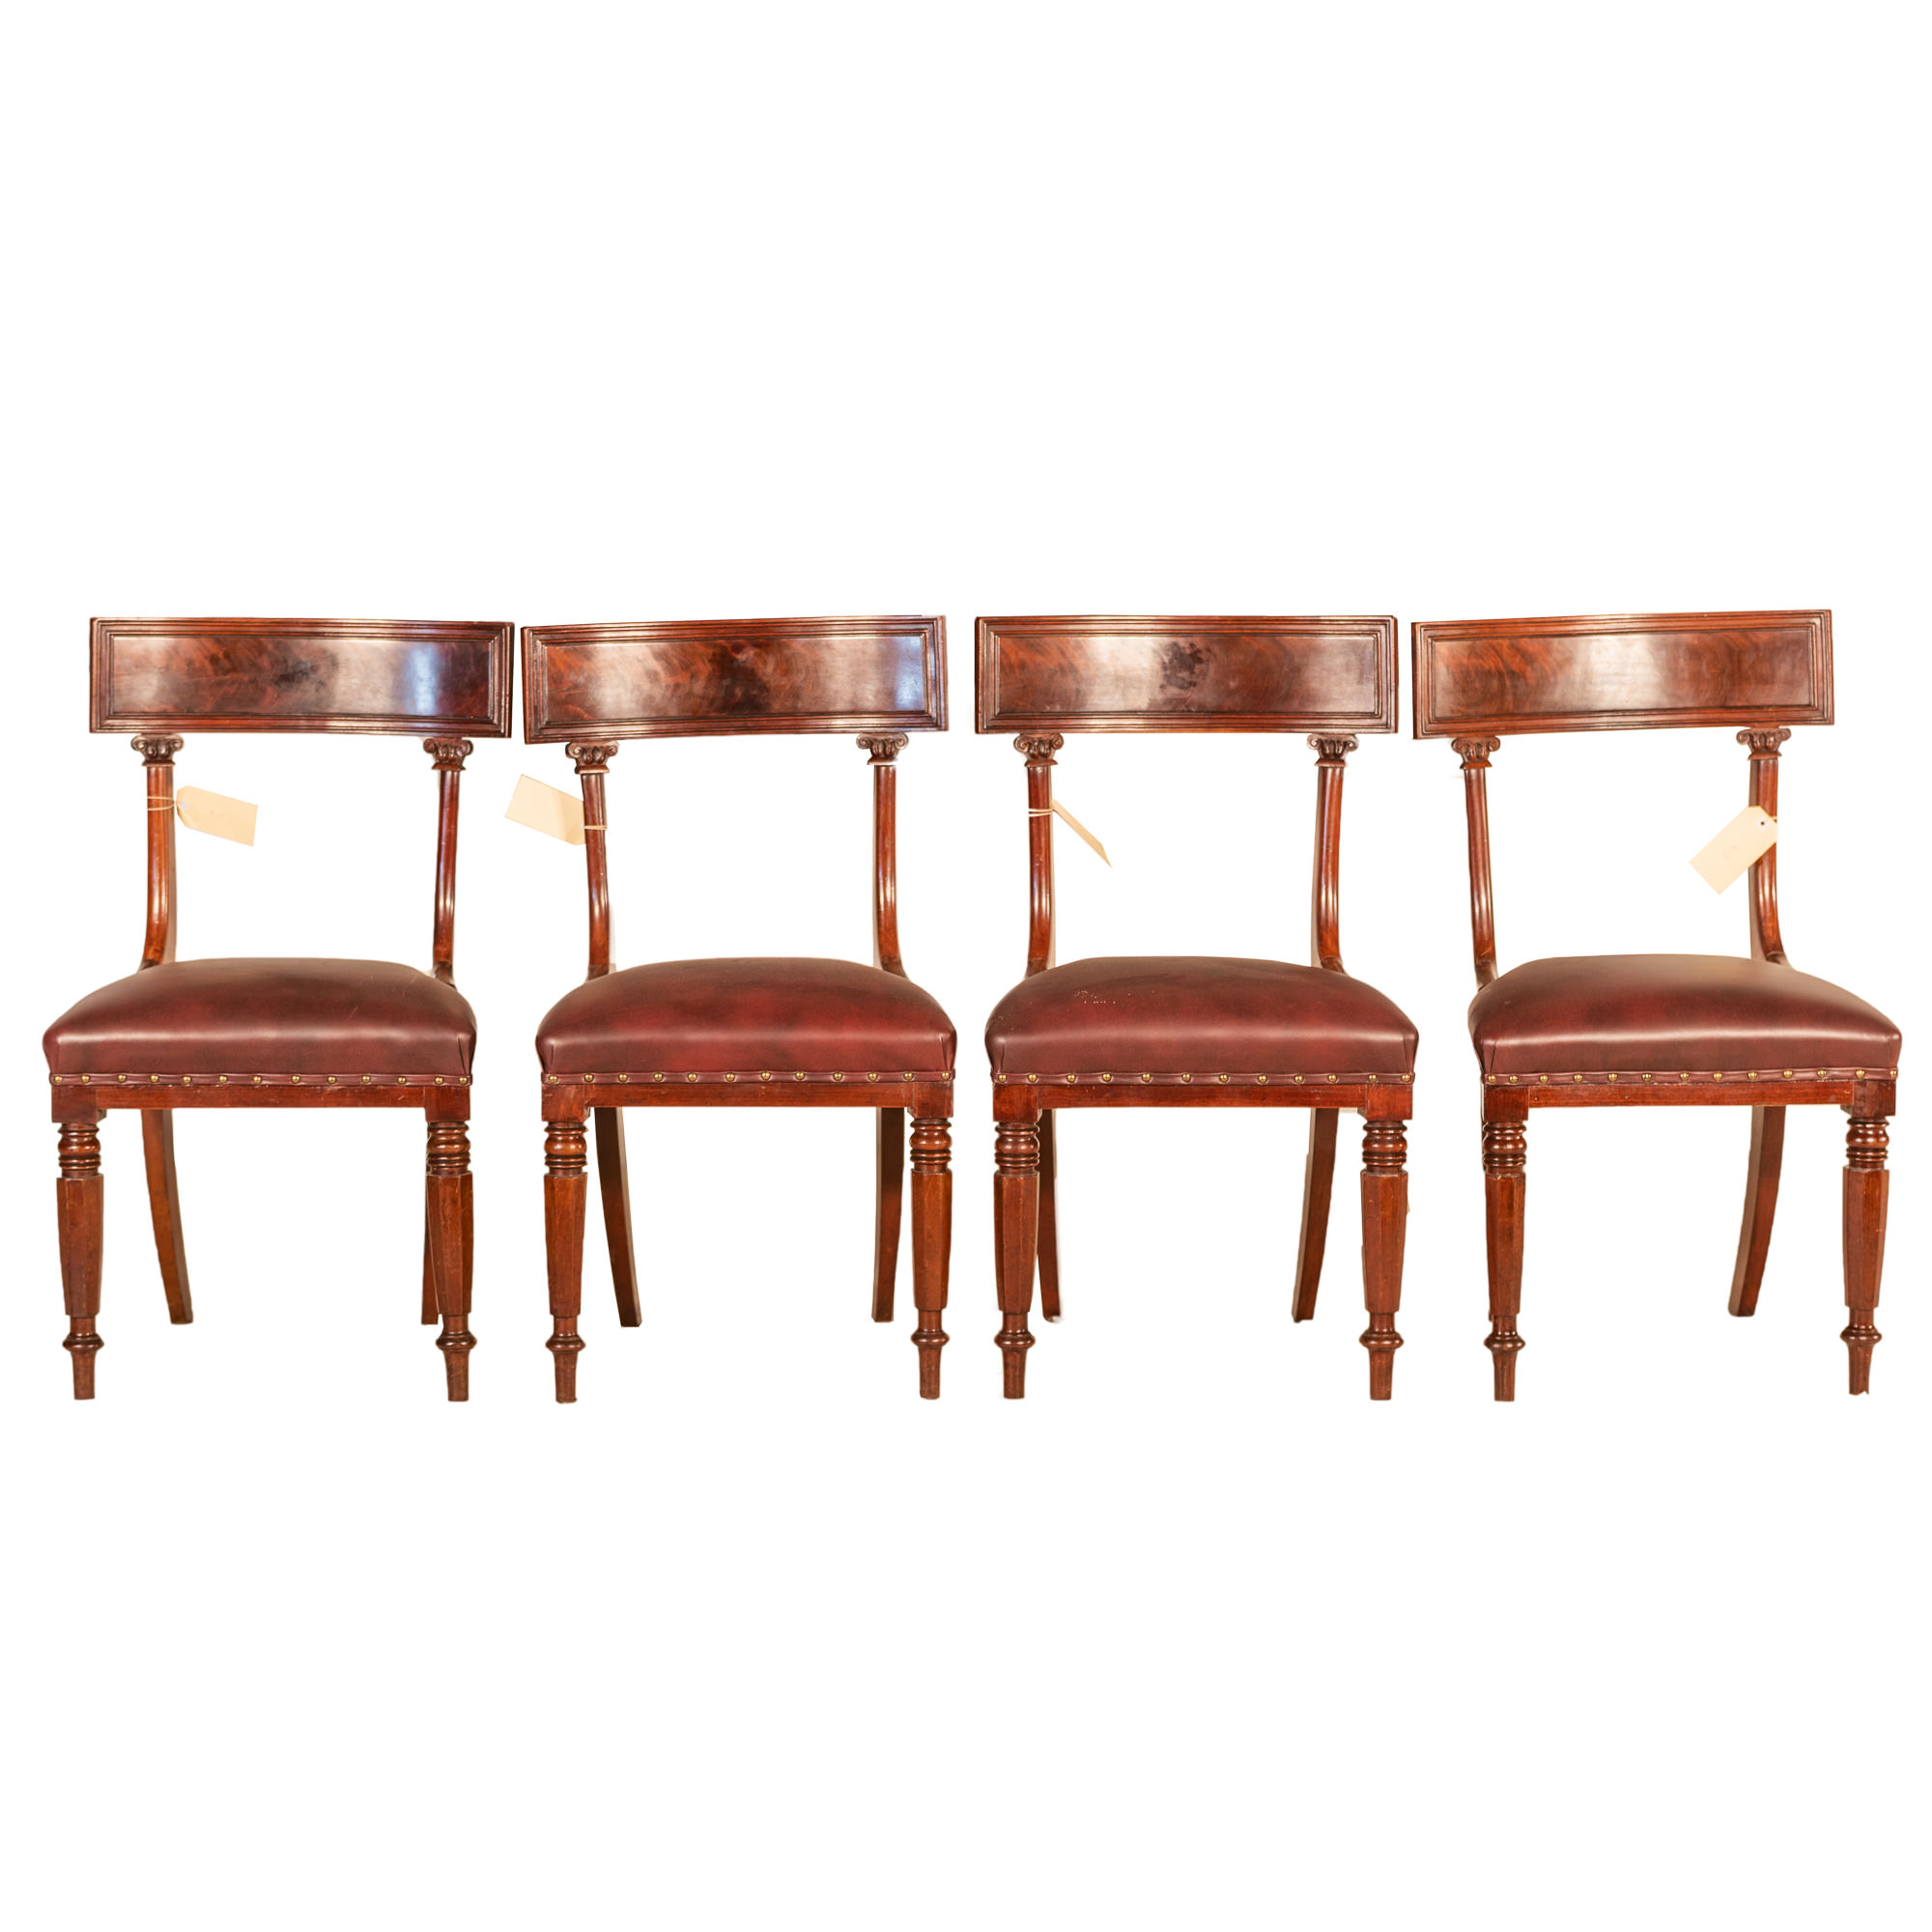 'Four William IV Mahogany Dining Chairs with Brown Leather Upholstery Circa 1835'